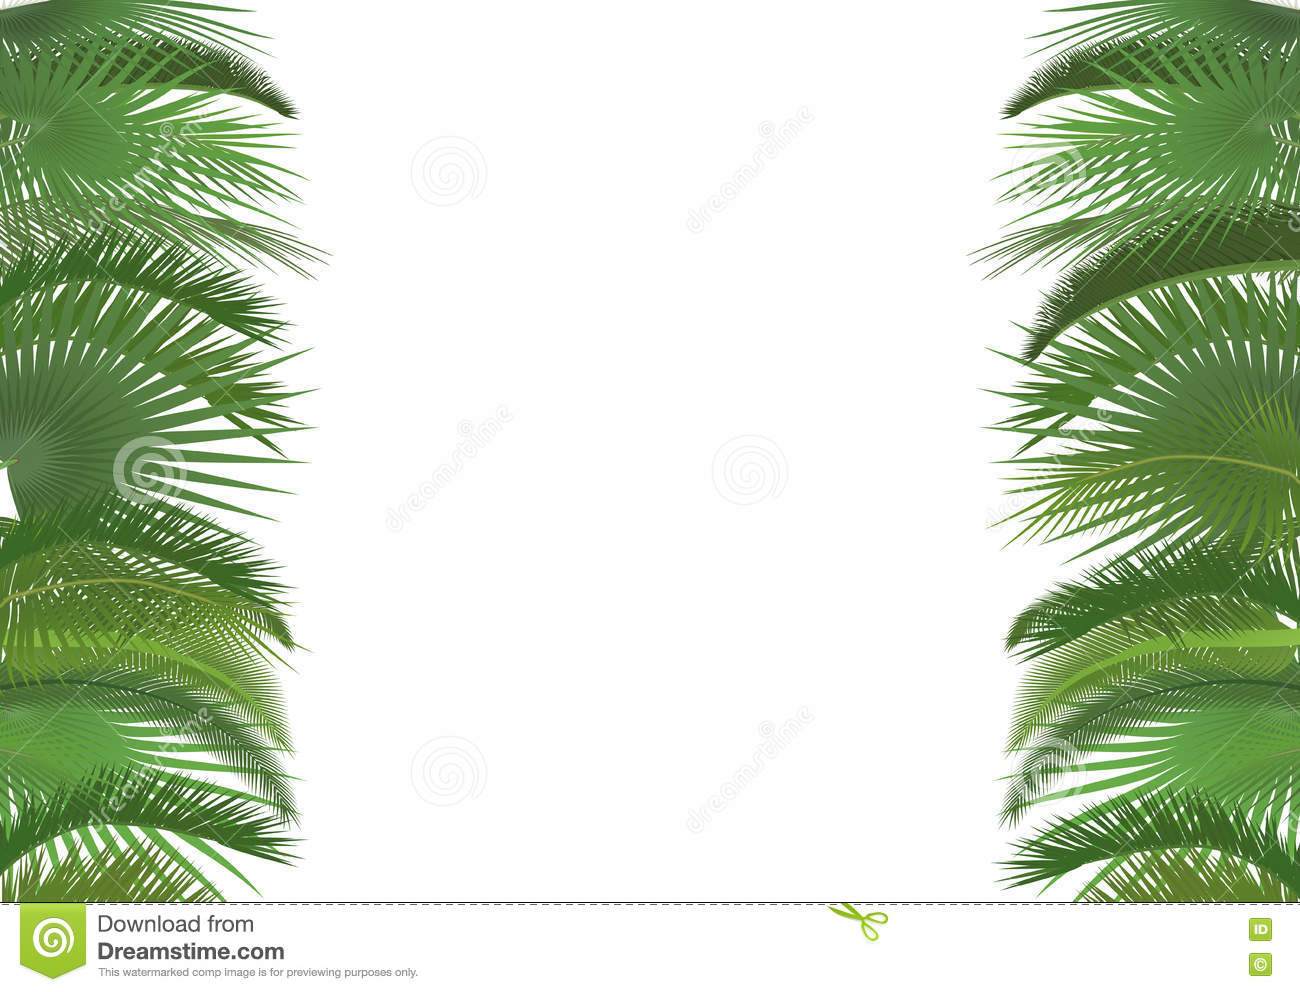 palm card template word - palm plant tree leaves background template exotic